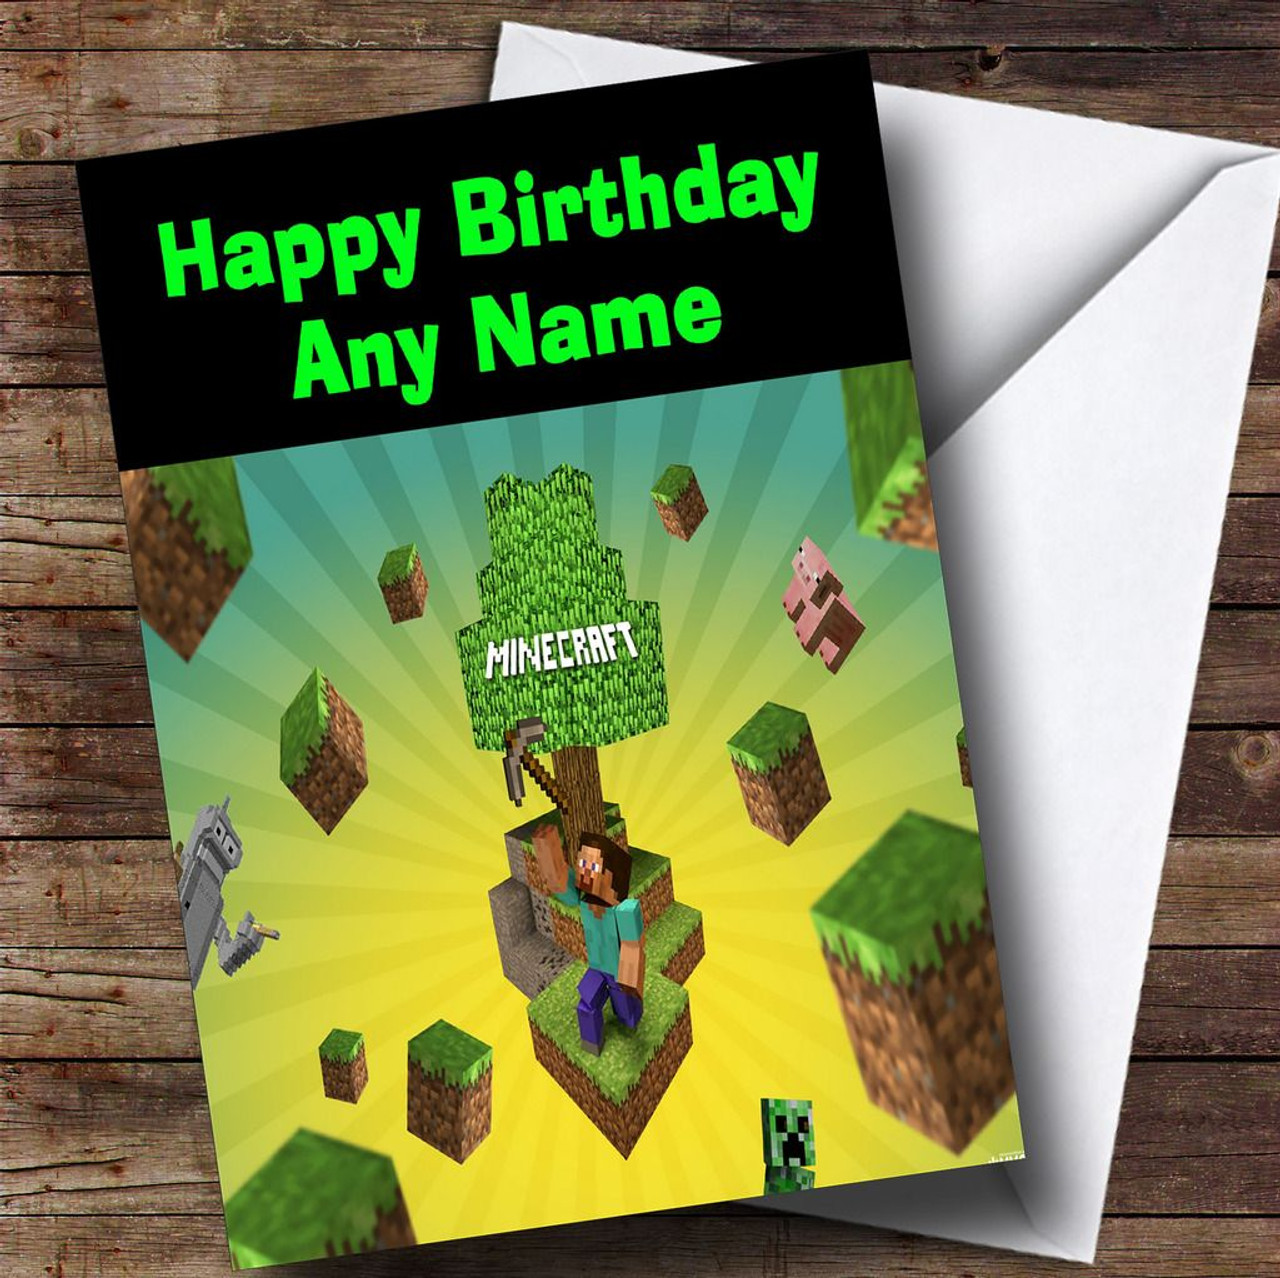 Minecraft characters personalised childrens birthday card the minecraft characters personalised childrens birthday card bookmarktalkfo Image collections